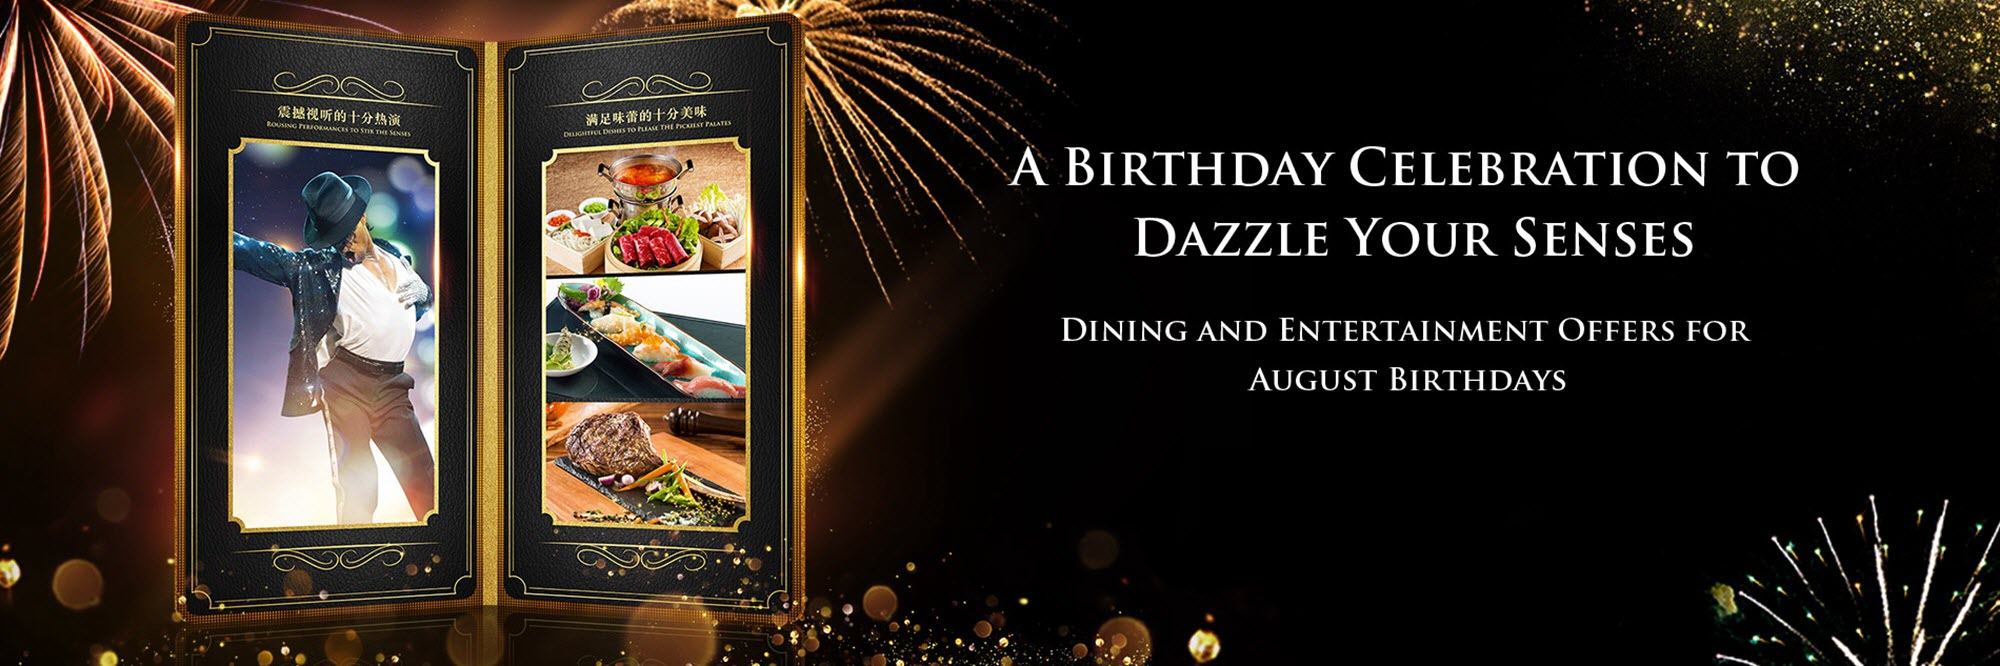 A Birthday Celebration to Dazzle Your Senses